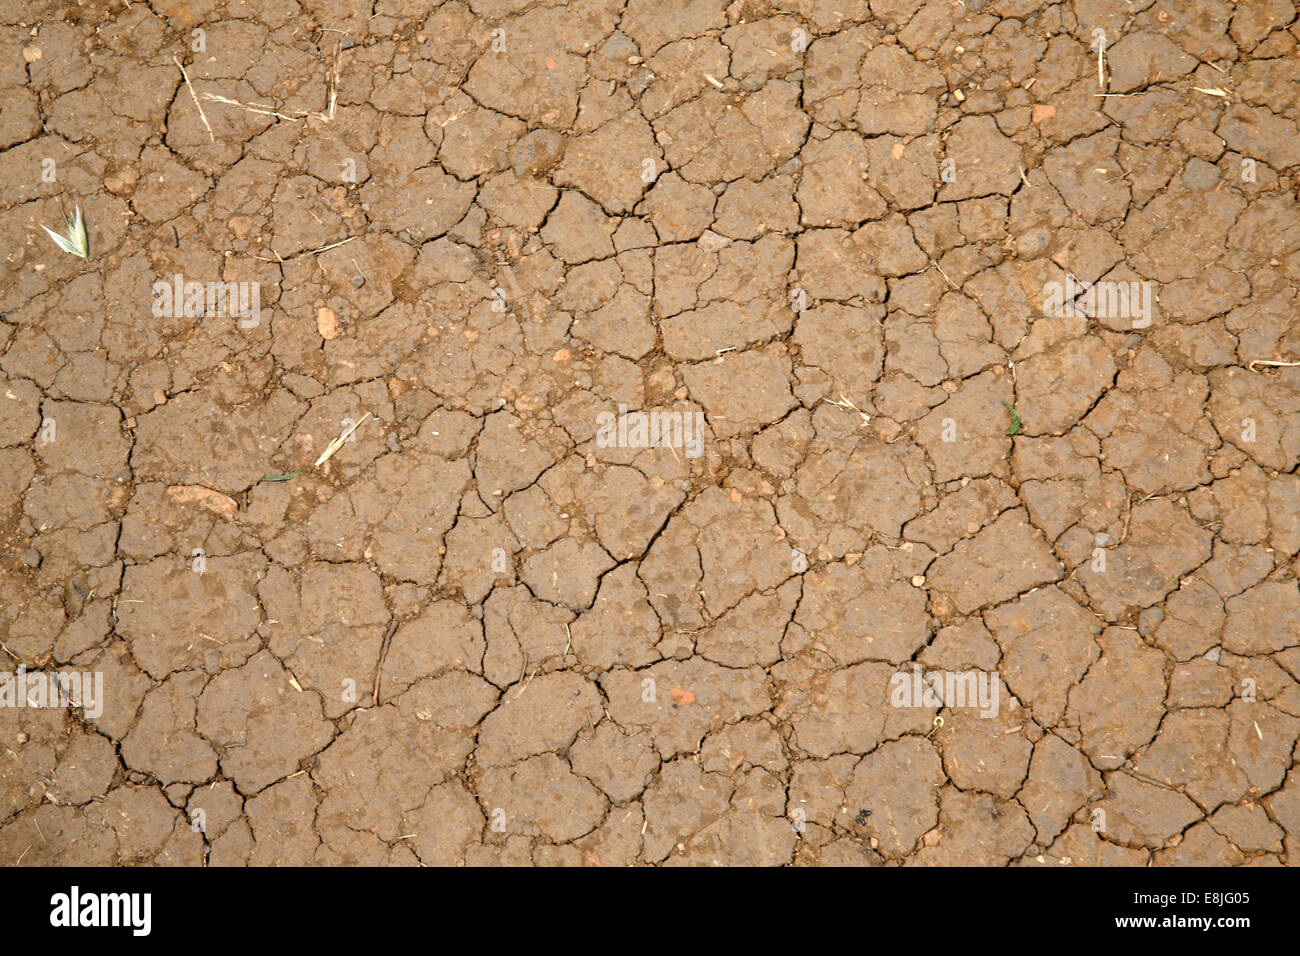 Earth craked by the dryness. - Stock Image